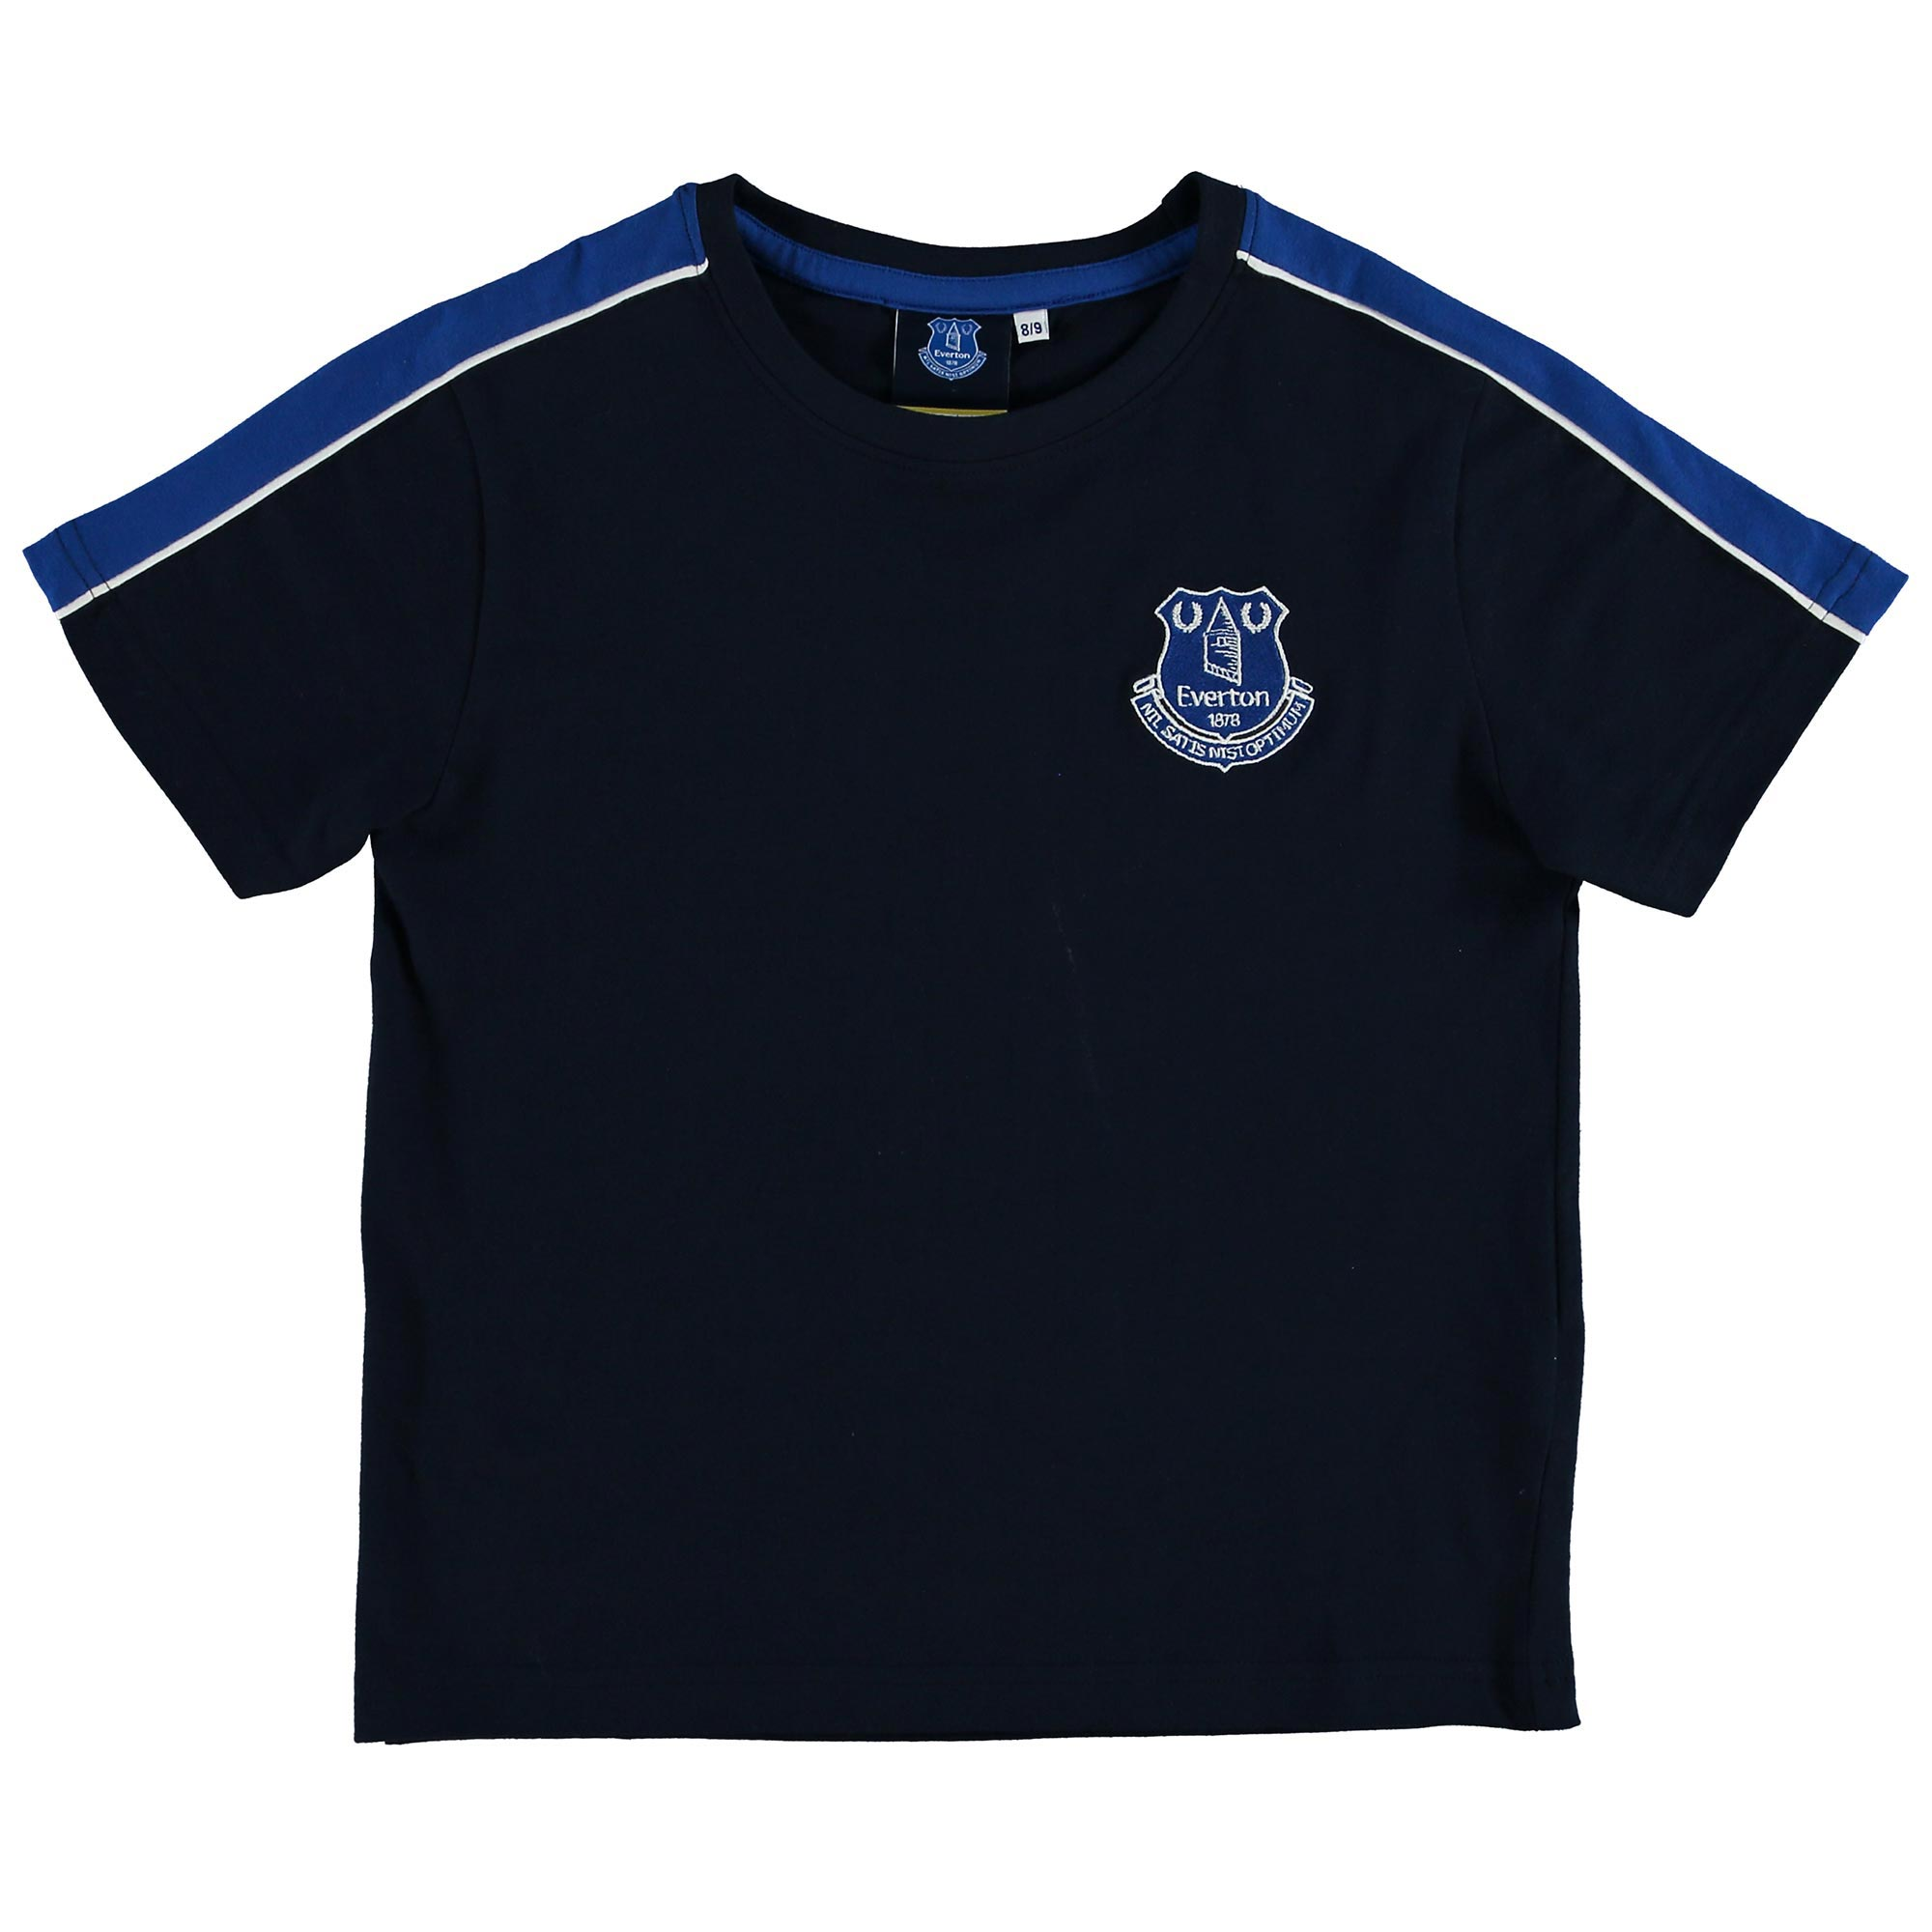 Everton T-Shirt - Navy - Junior